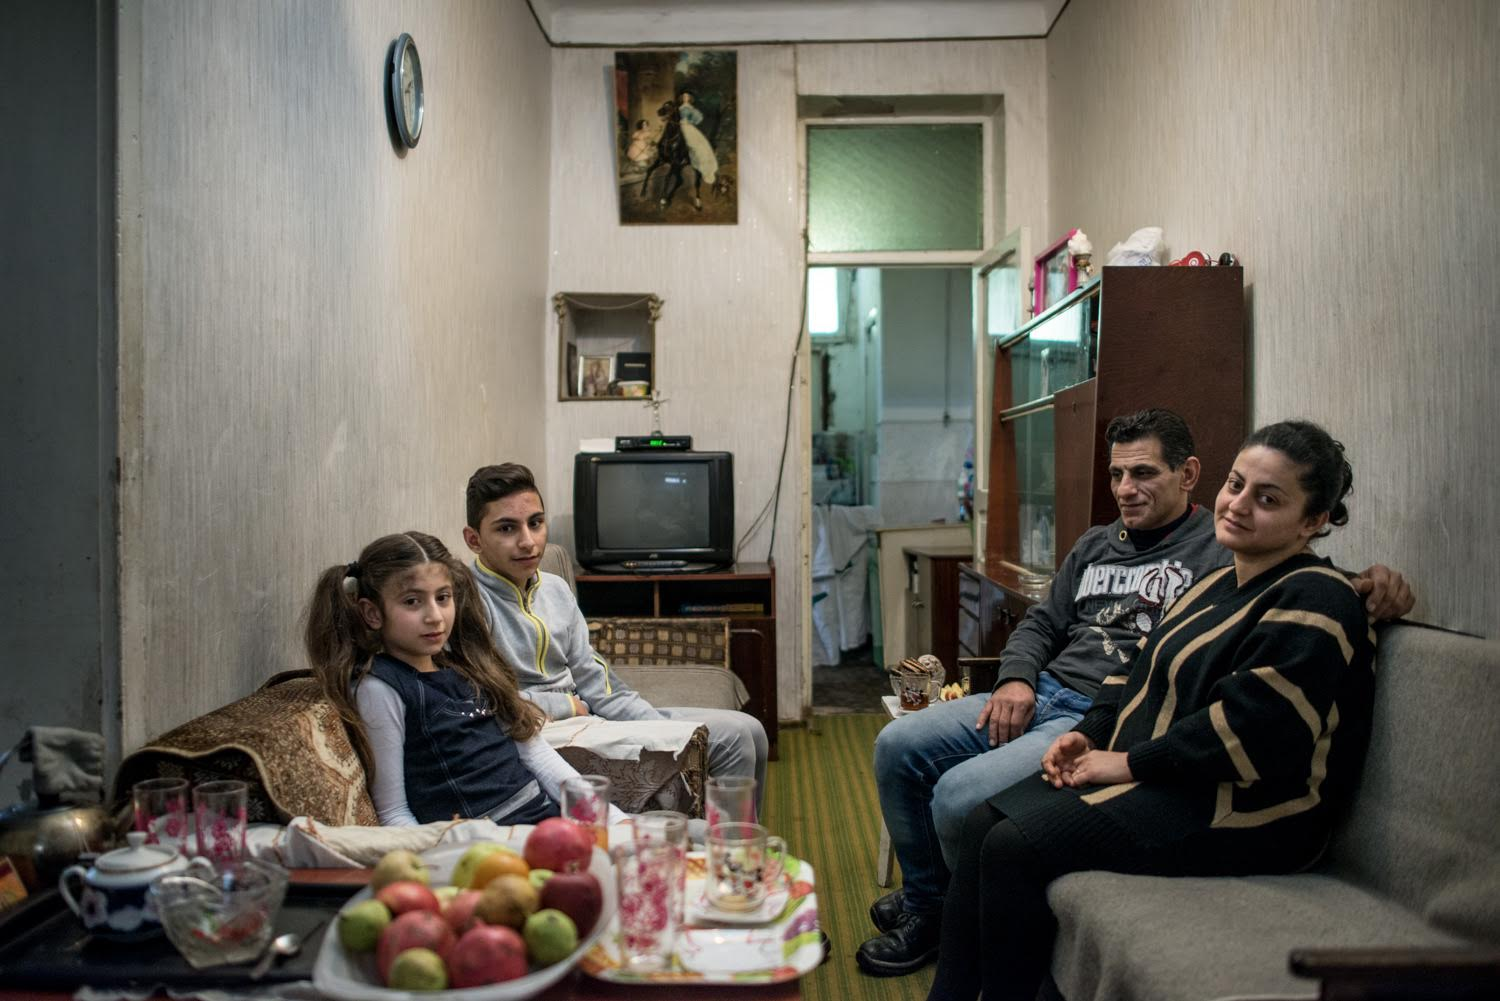 Syrian Refugees in Yerevan - Photo credit Anush Babajanyan on assignment for the Armenian Redwood Project